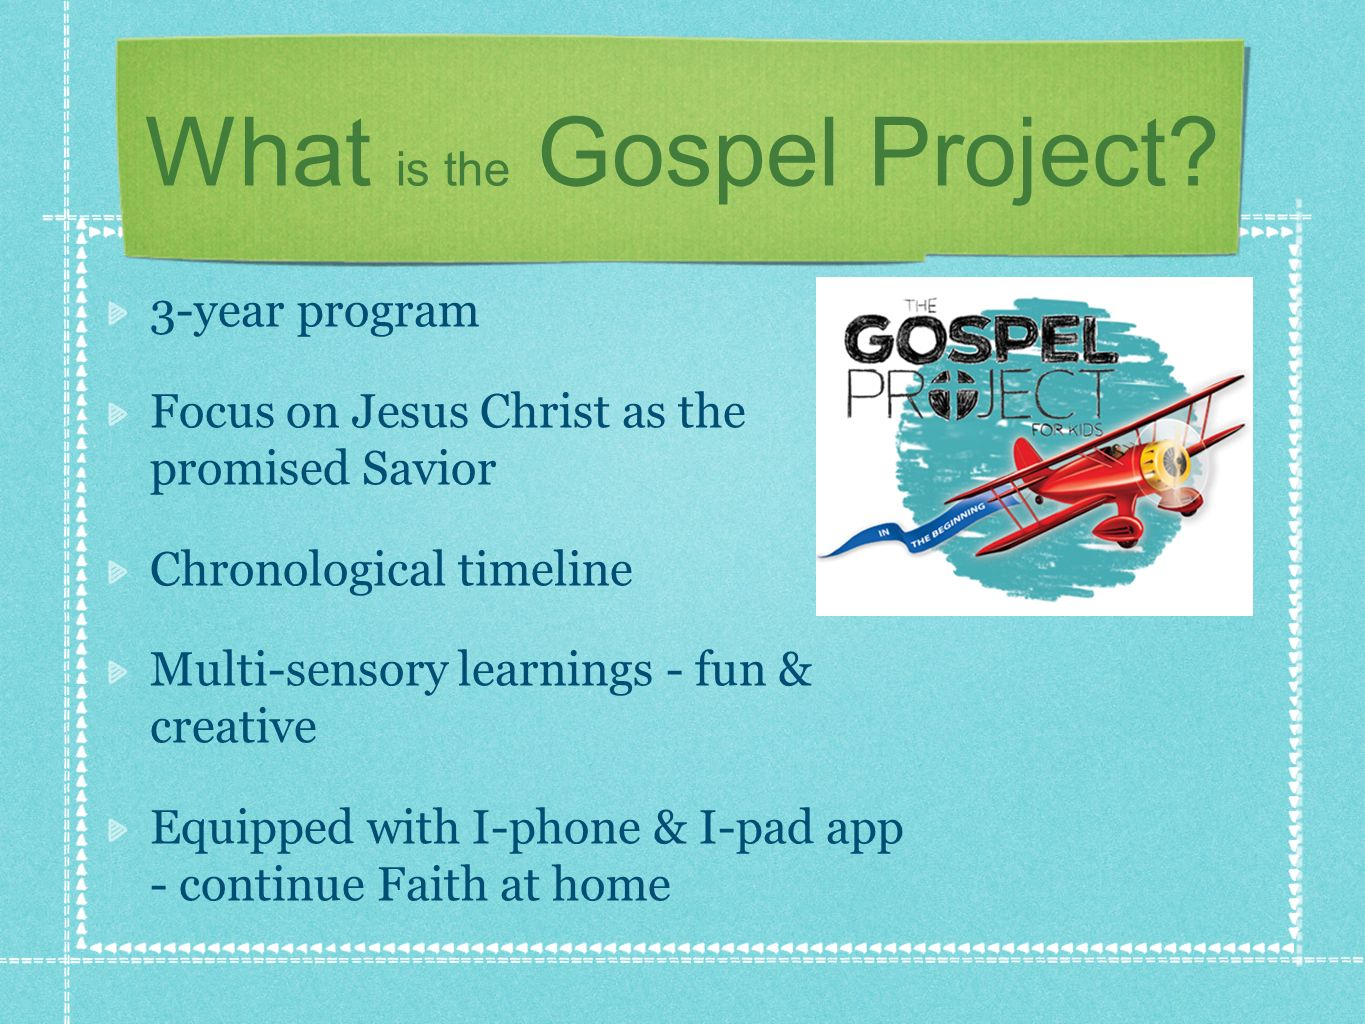 What is the Gospel Project